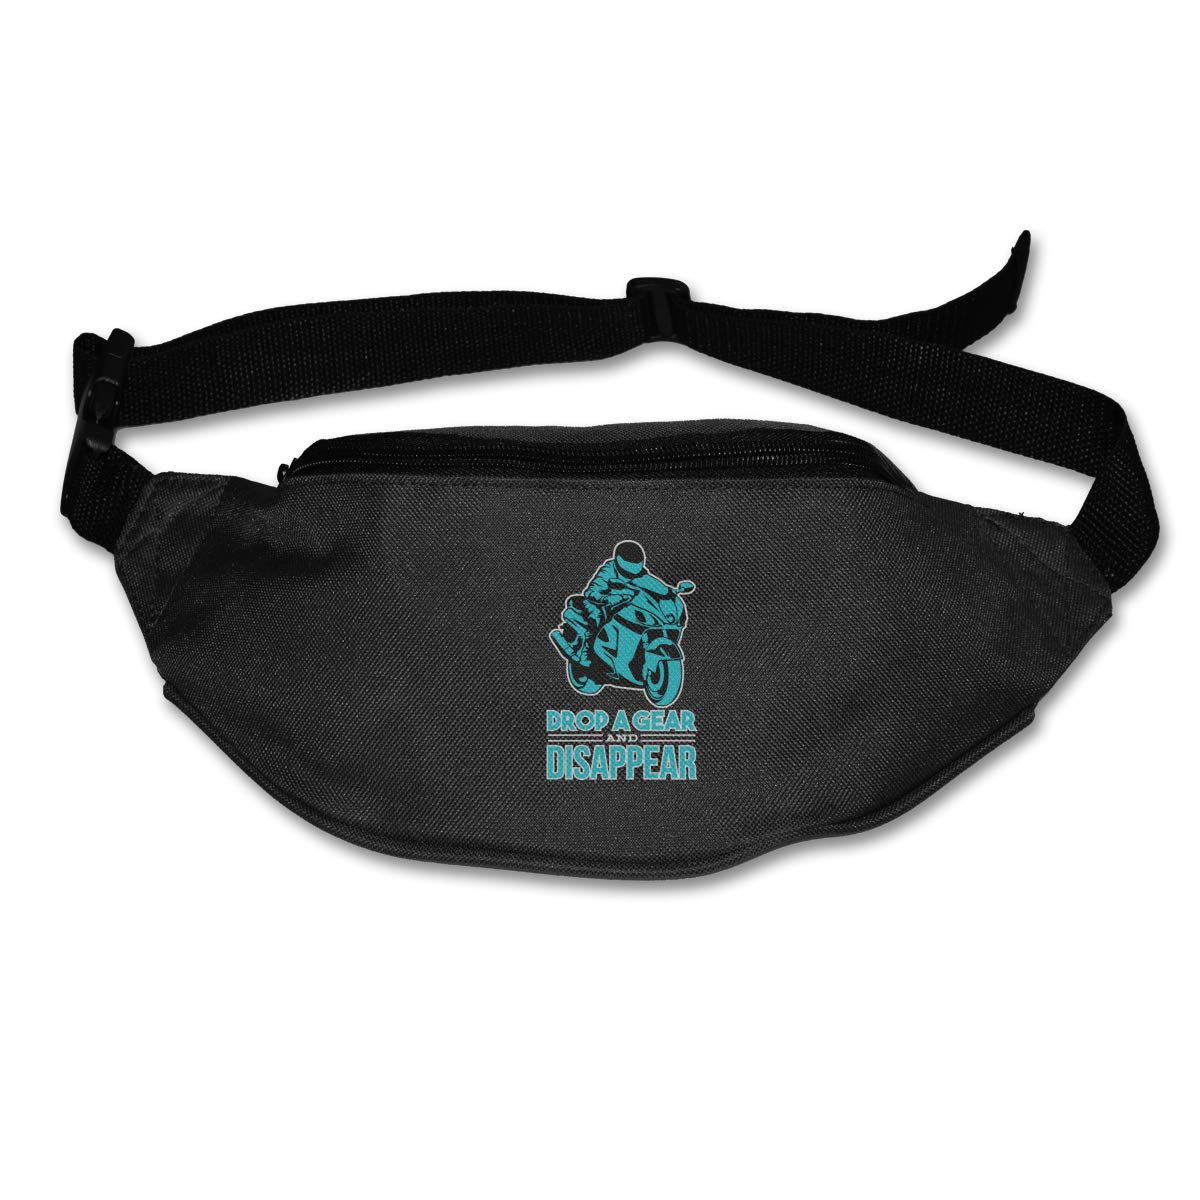 Drop A Gear And Disappear Sport Waist Pack Fanny Pack Adjustable For Run